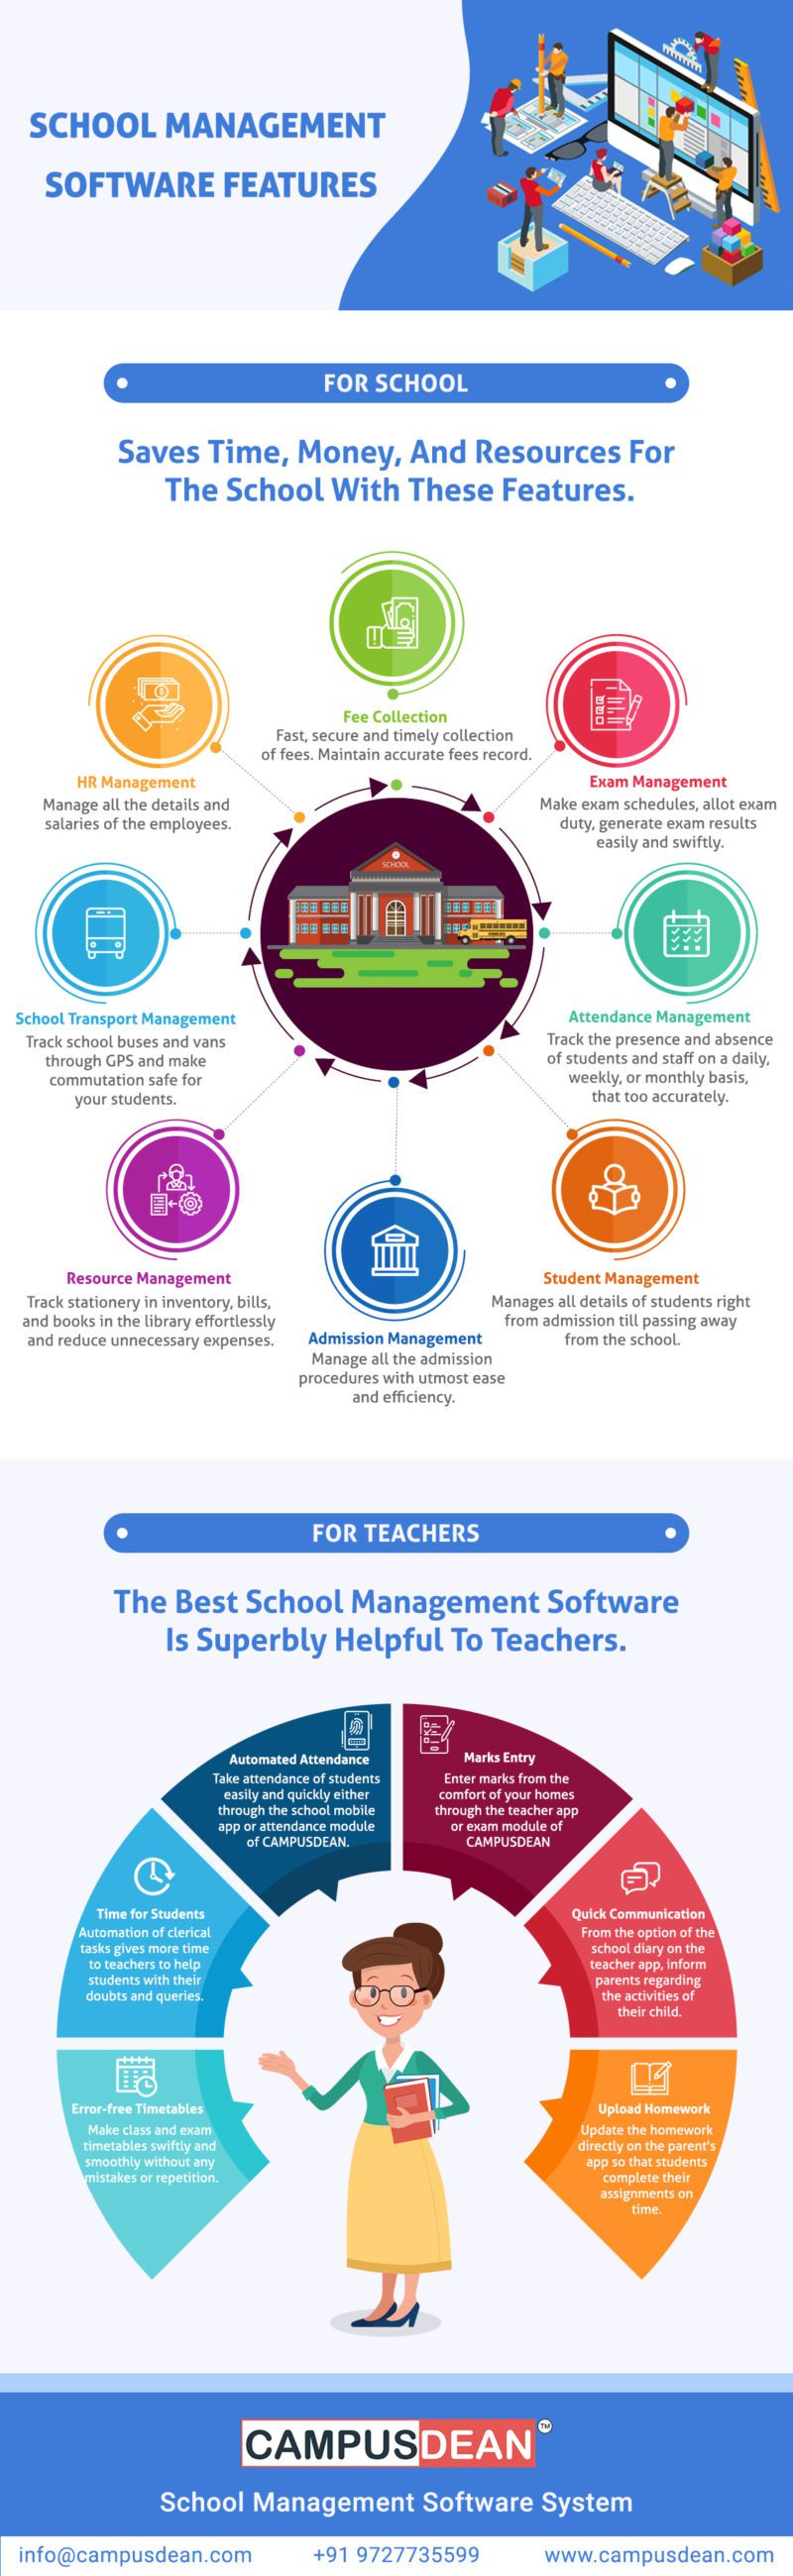 School Software Features For School And Teachers Infographic